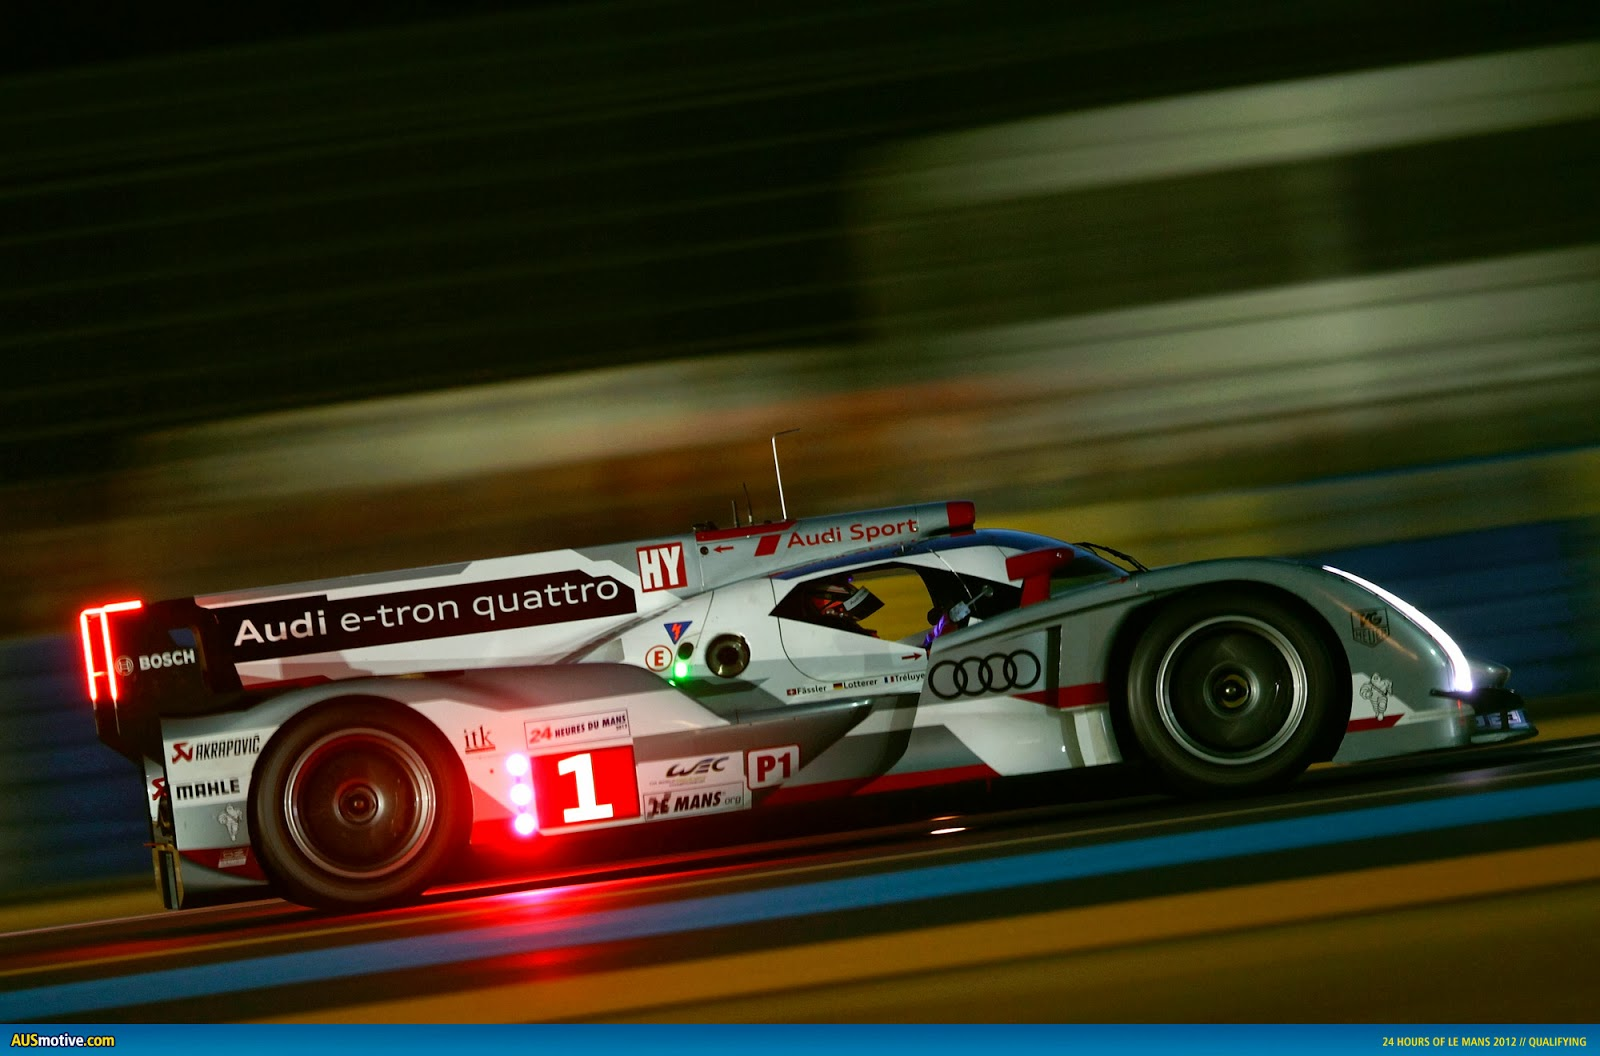 24 Hours of Le Mans  a legendary race   Diego Braghi